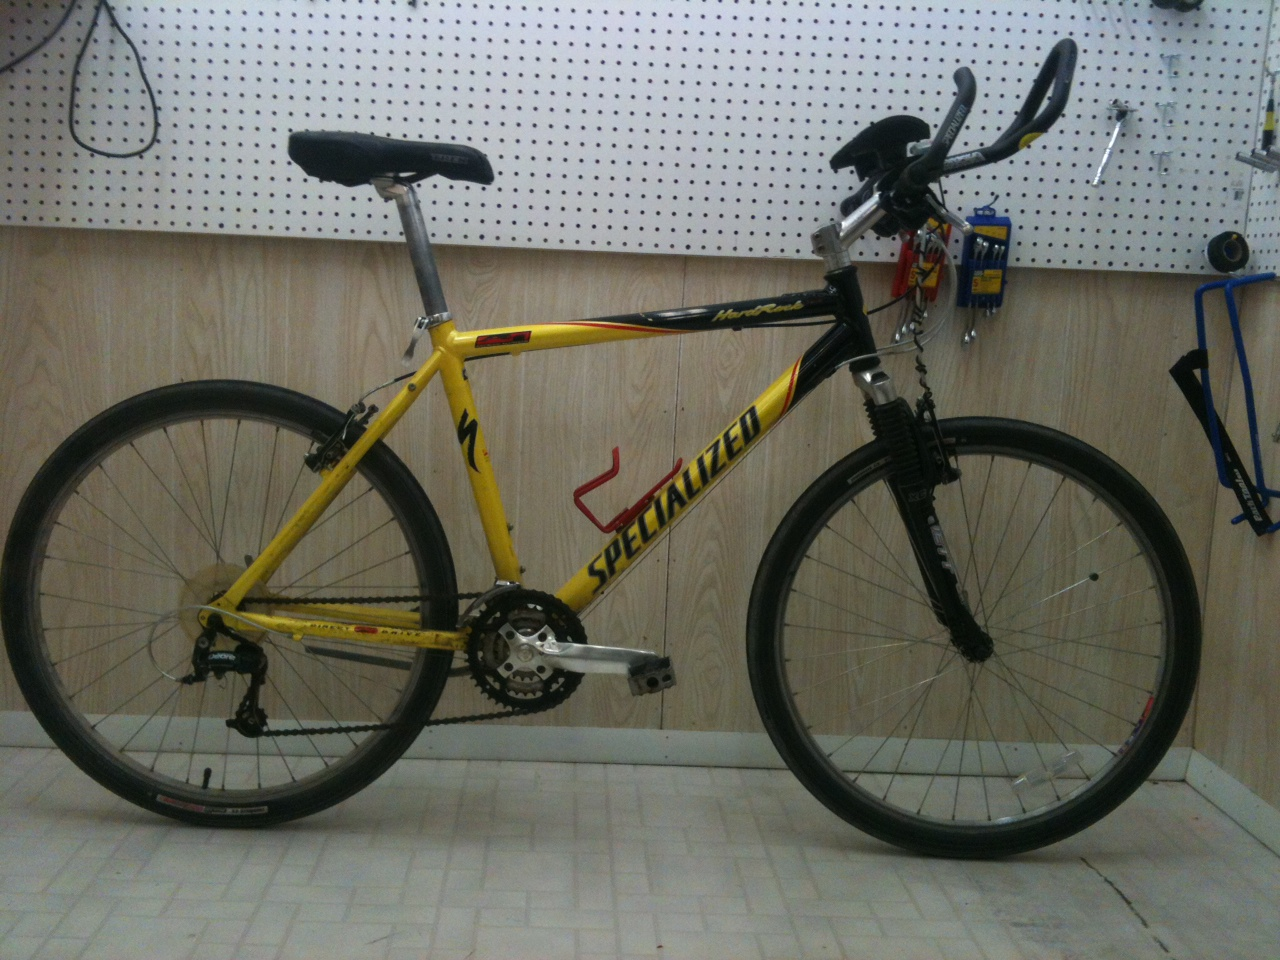 John's Bicycle Restorations: Customers Specialized Hardrock